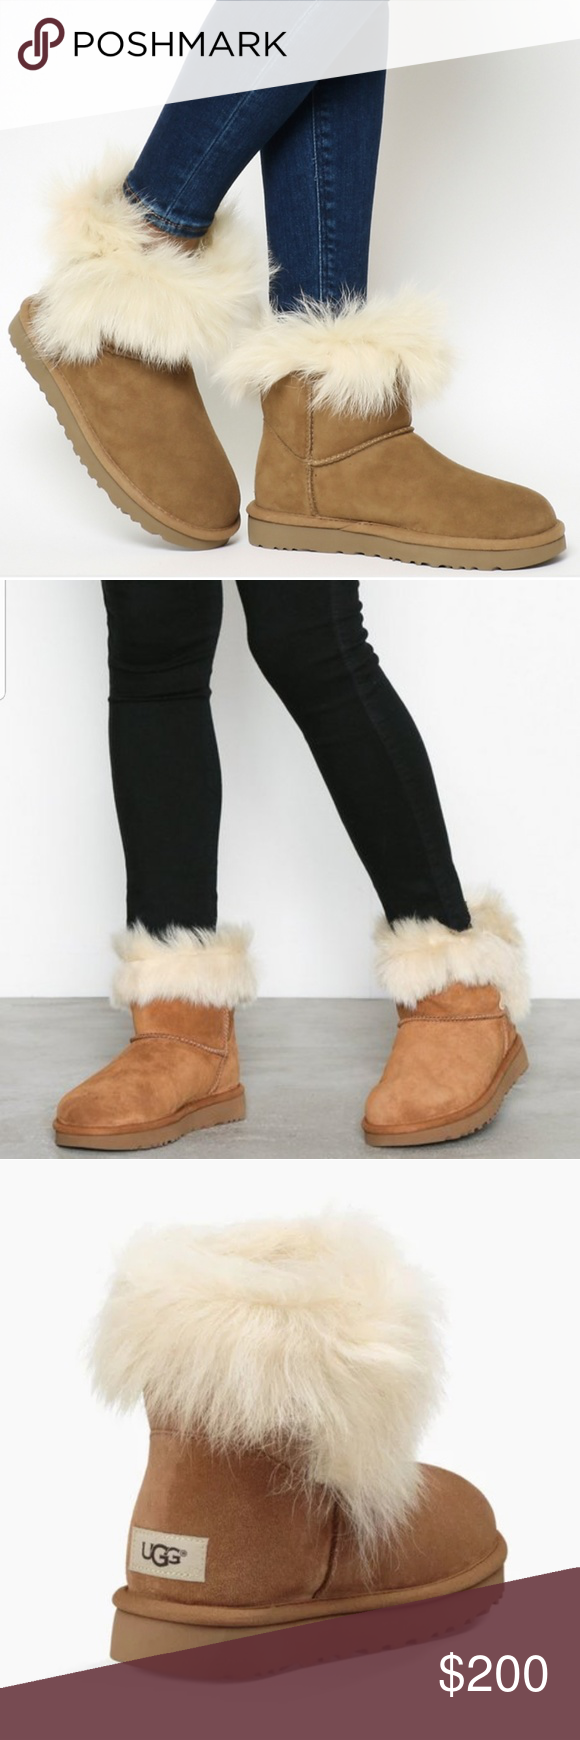 c72df608069 UGG boots Milla Chestnut Ugg Australia. Milla style boots in ...